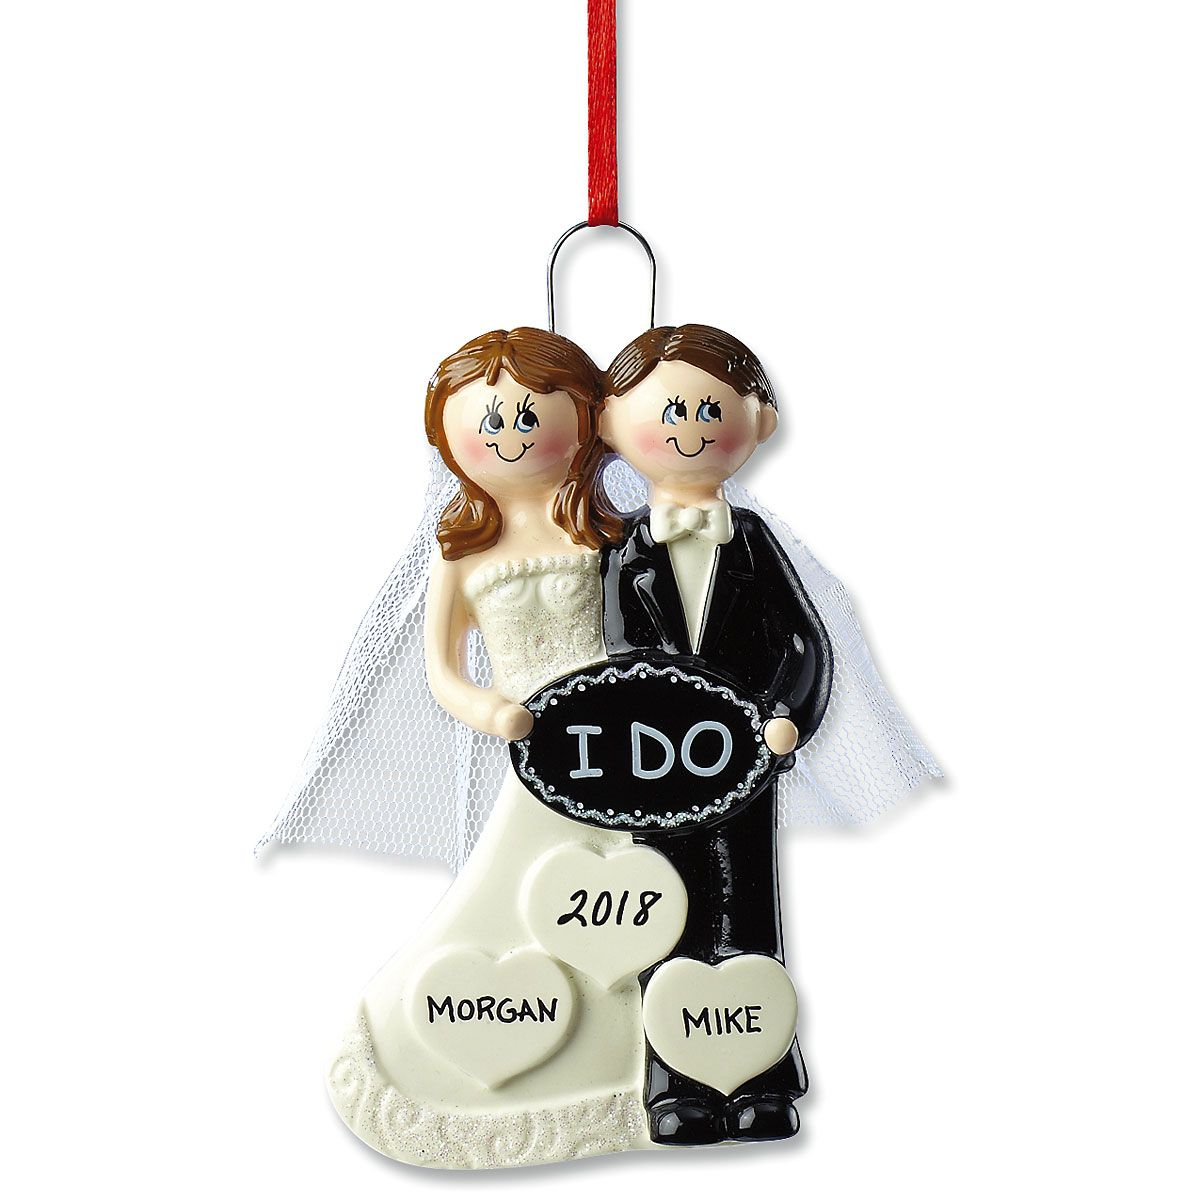 I Do Wedding Personalized Ornaments